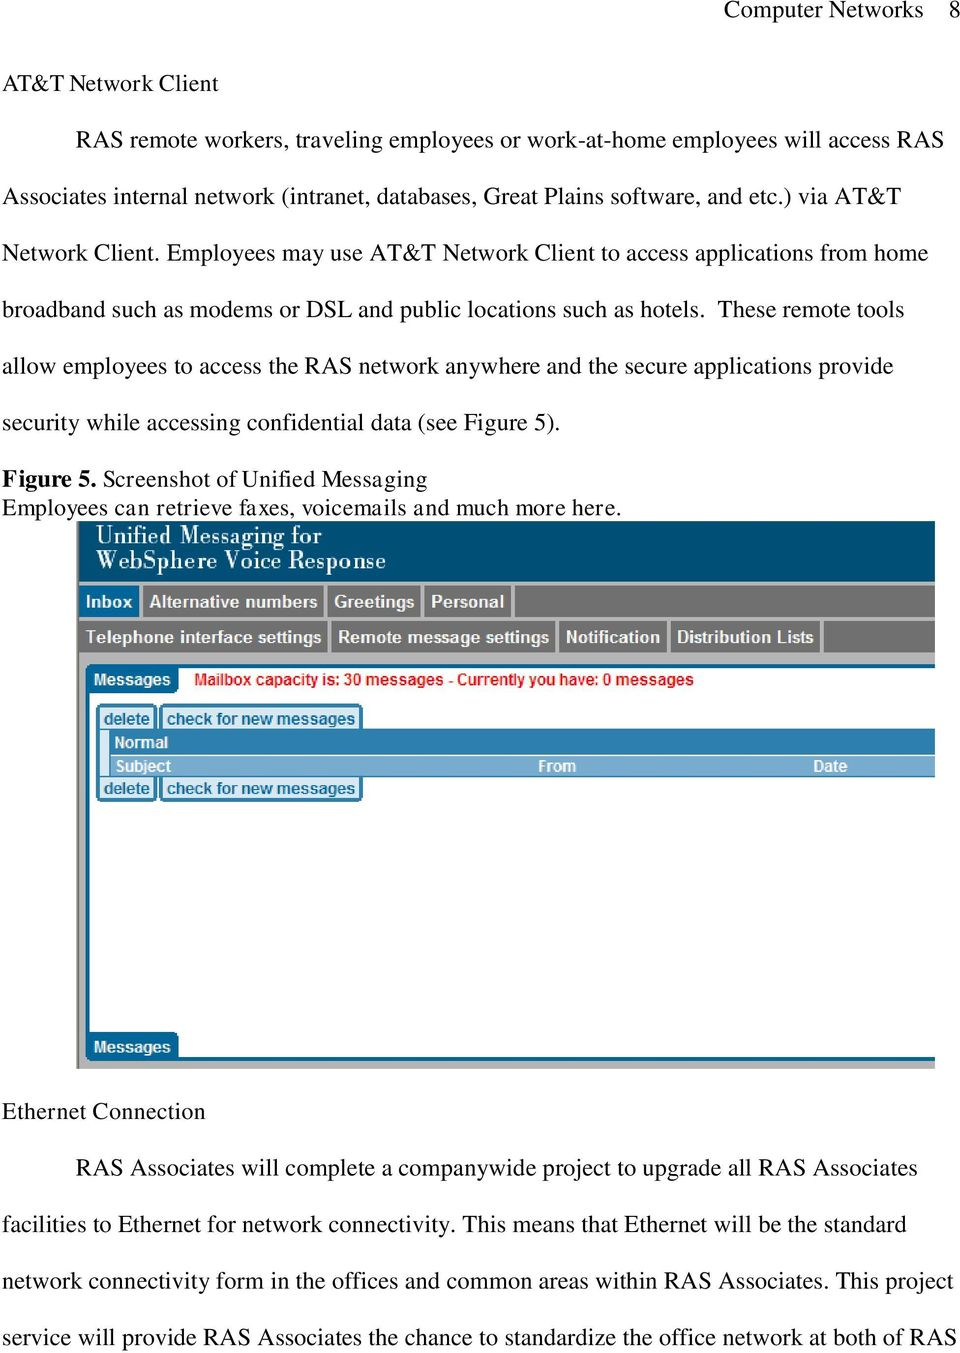 These remote tools allow employees to access the RAS network anywhere and the secure applications provide security while accessing confidential data (see Figure 5)